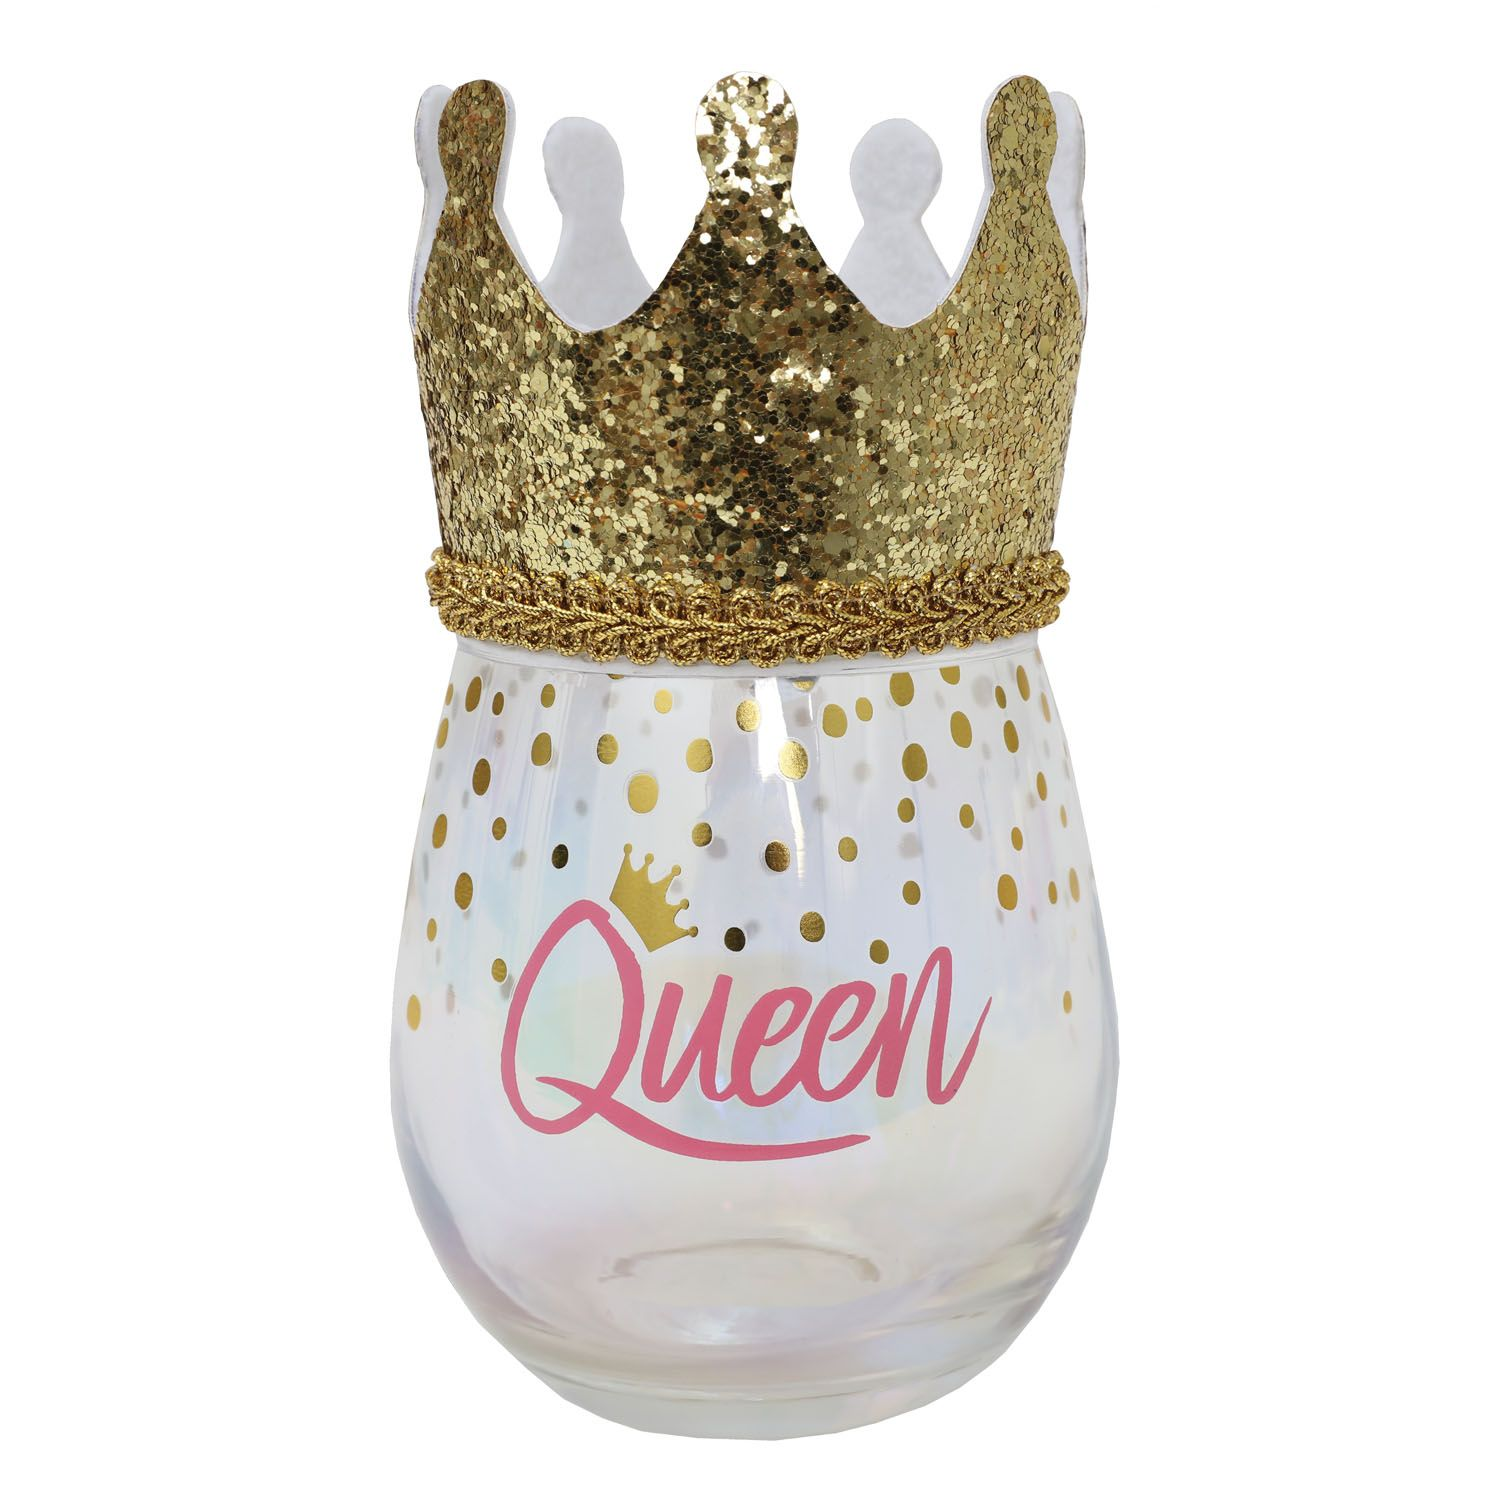 Queen Celebration Glass